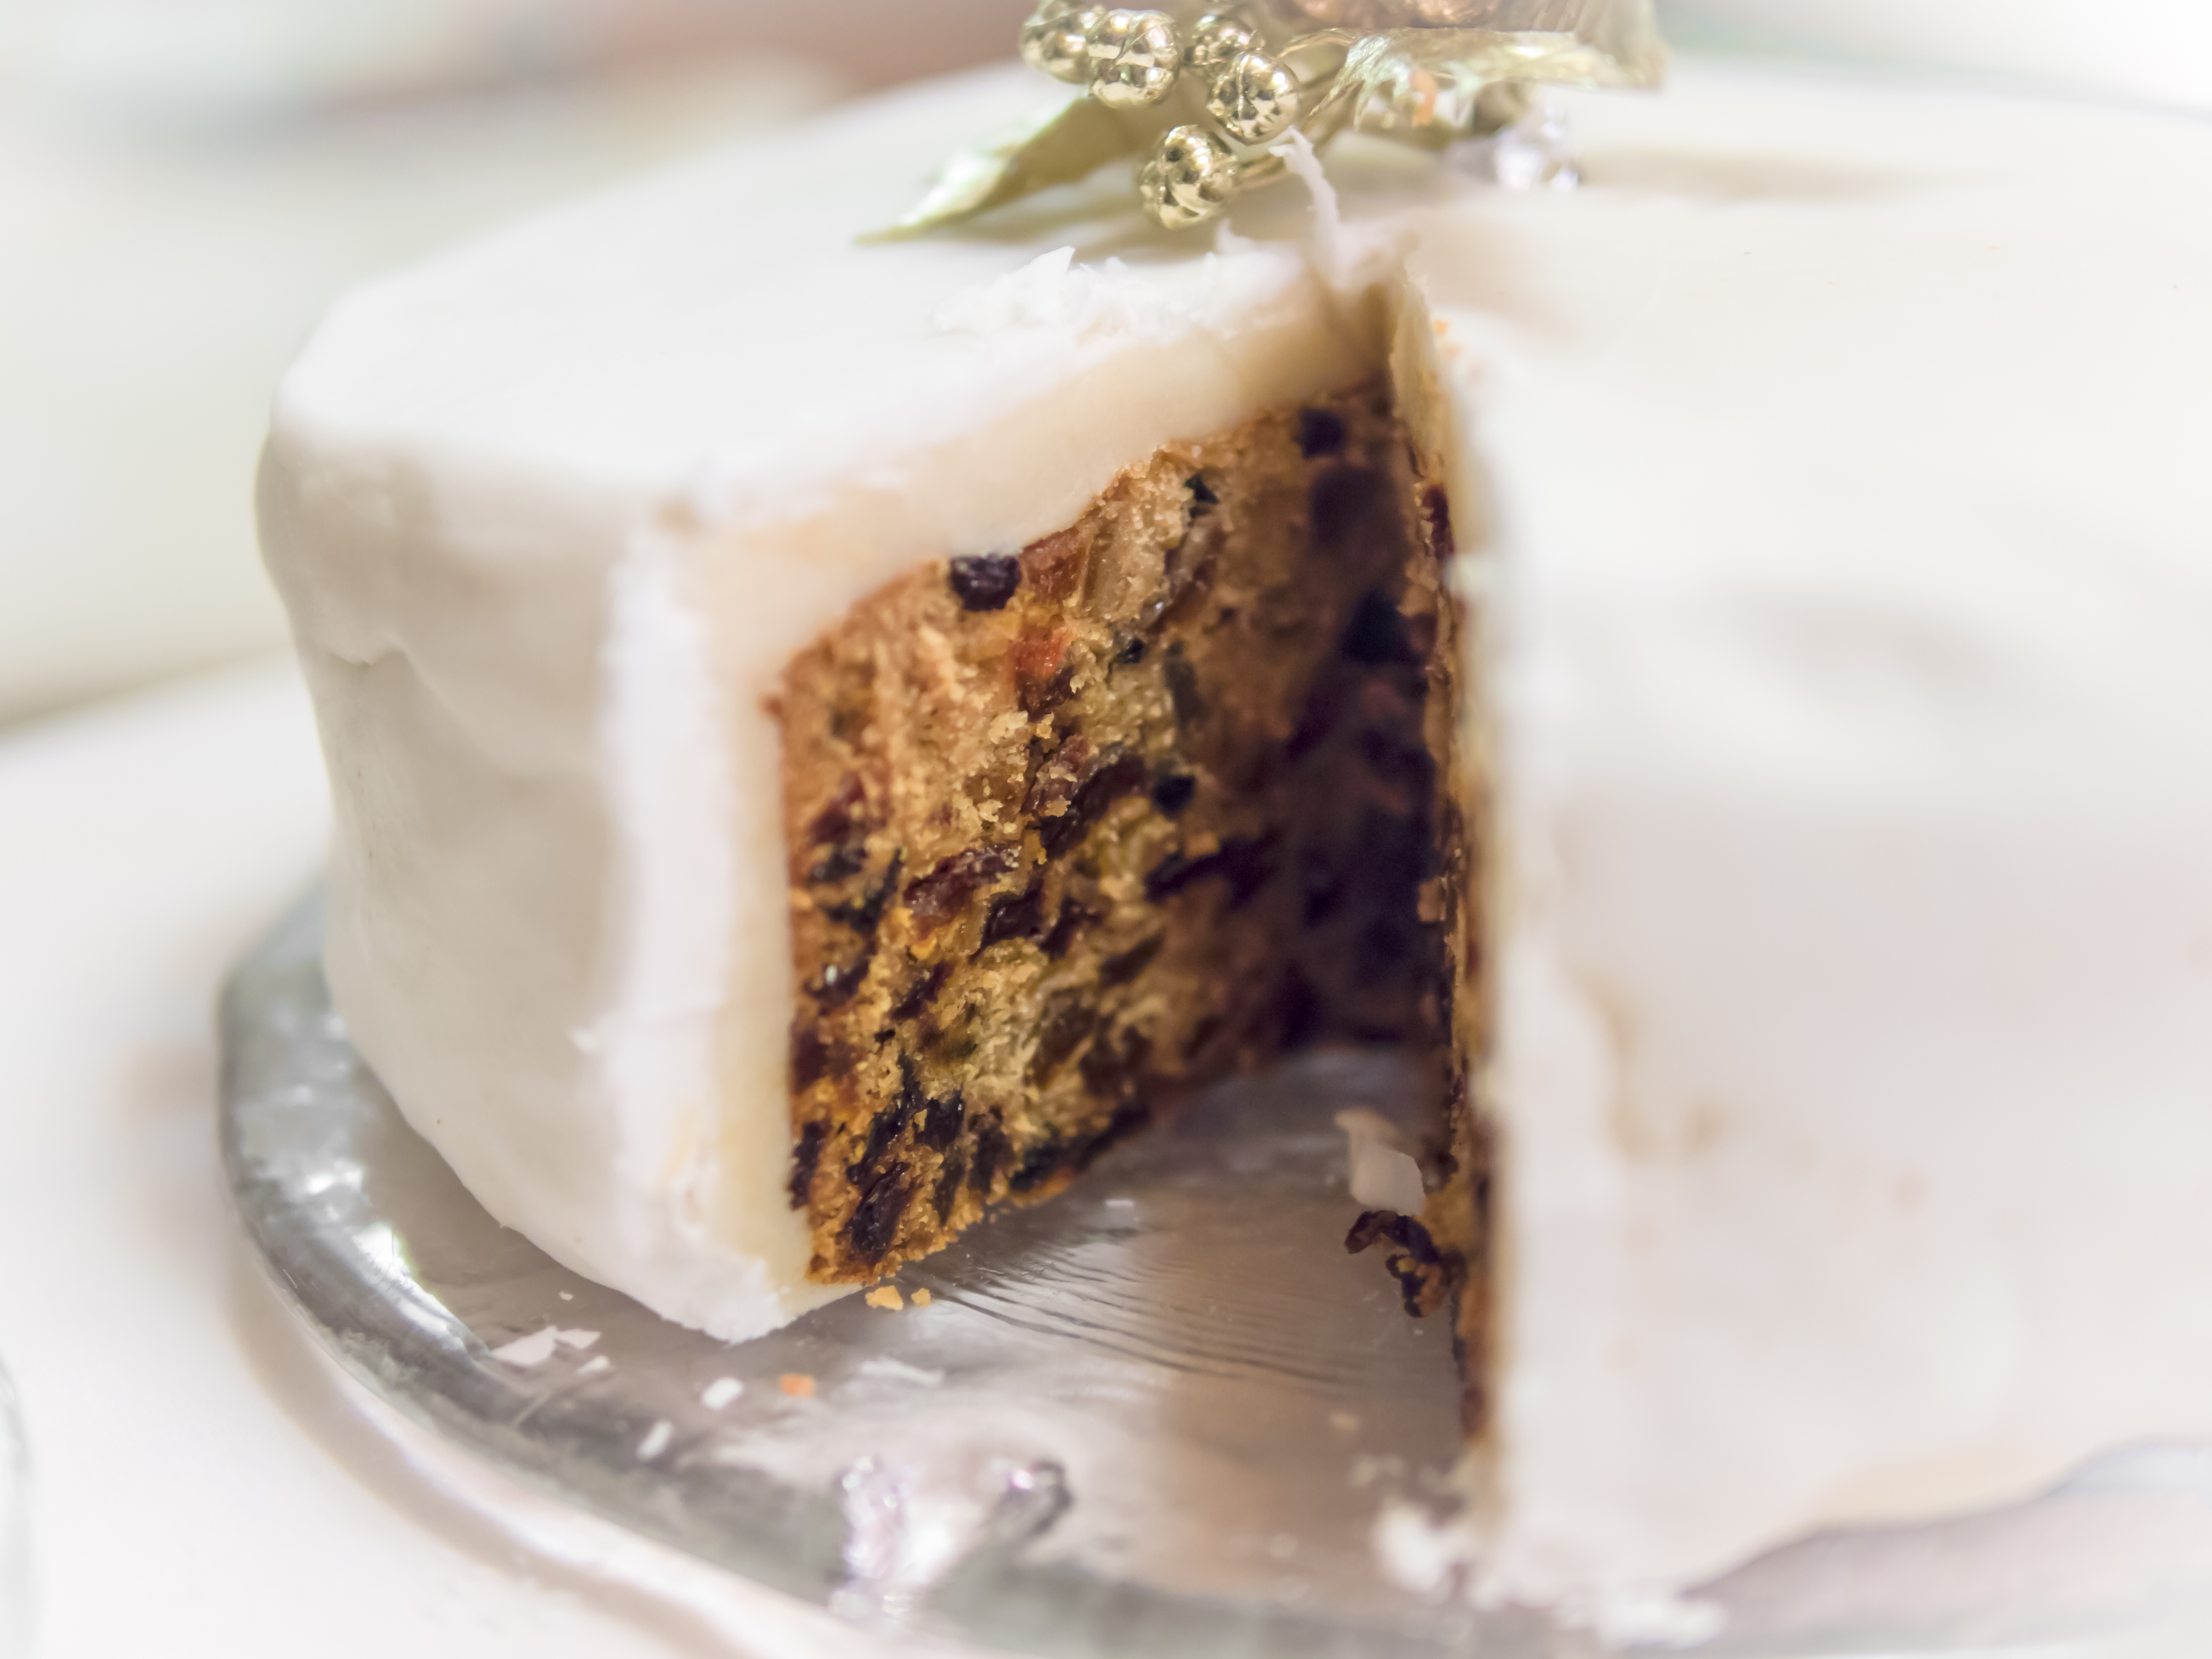 A British Christmas cake with icing and marzipan.  One slice is removed to reveal the rich fruit cake inside